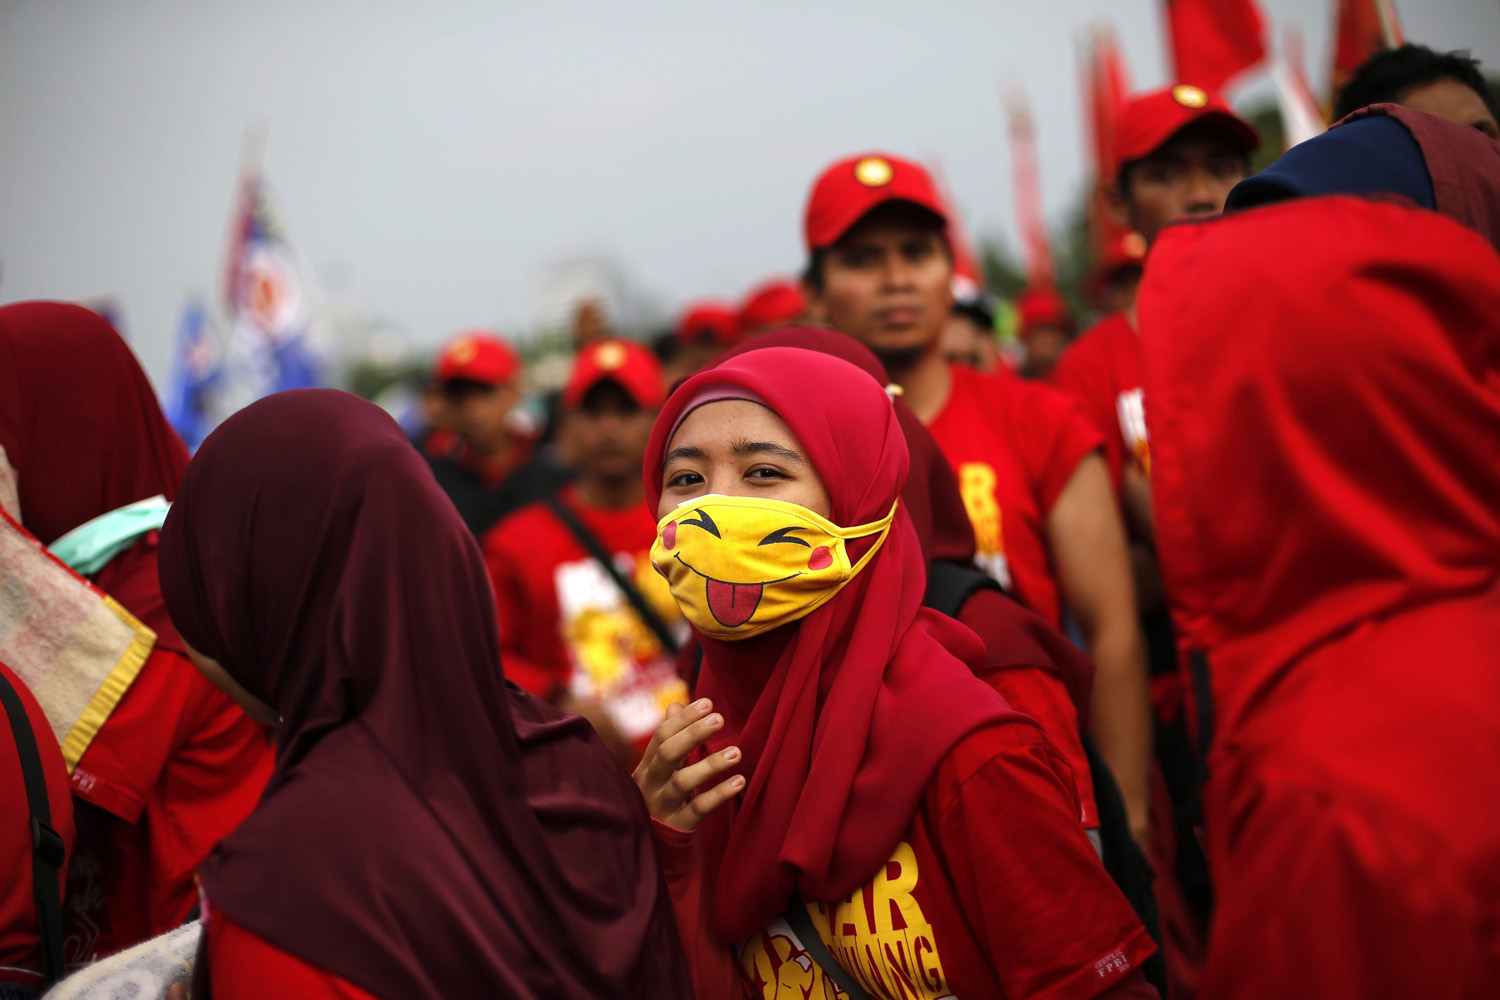 An Indonesian worker wears a pikachu Japanese character mask during a rally to mark the International Labor Day outside the presidential palace in Jakarta, Indonesia, May 1, 2014.